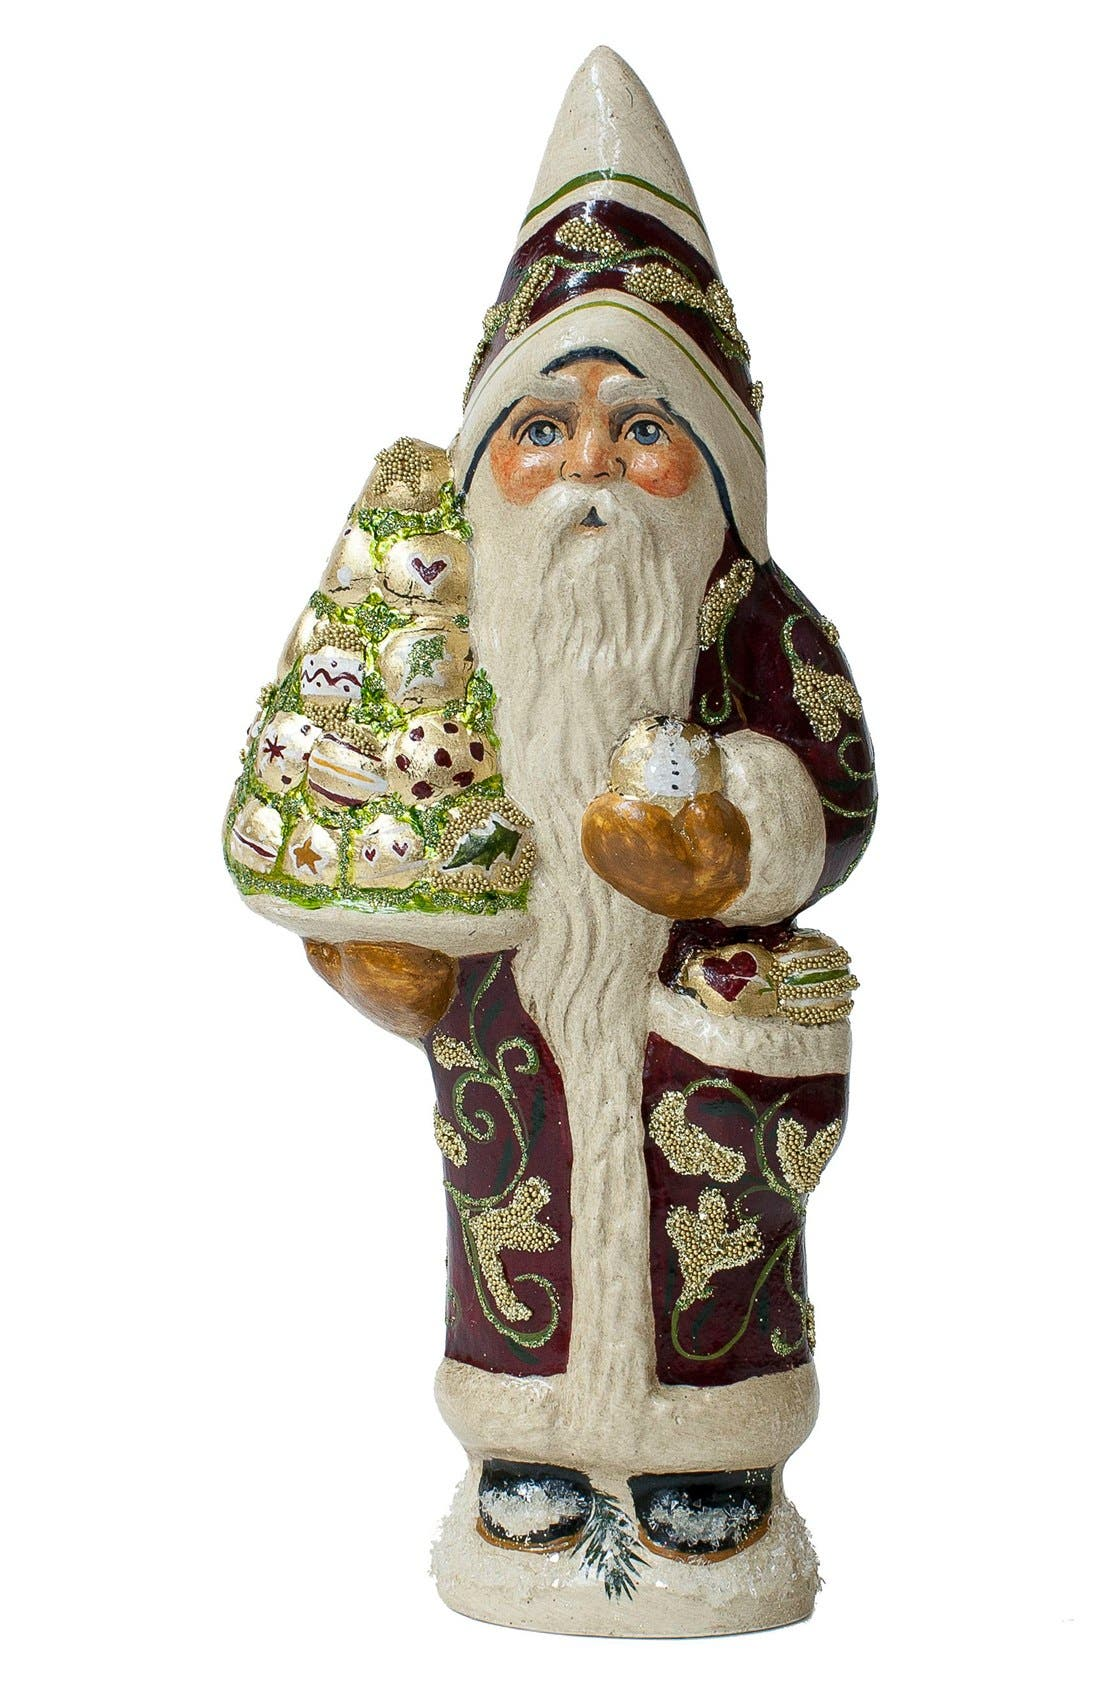 Vaillancourt 'Santa in Brocade Coat with Tree' Figurine